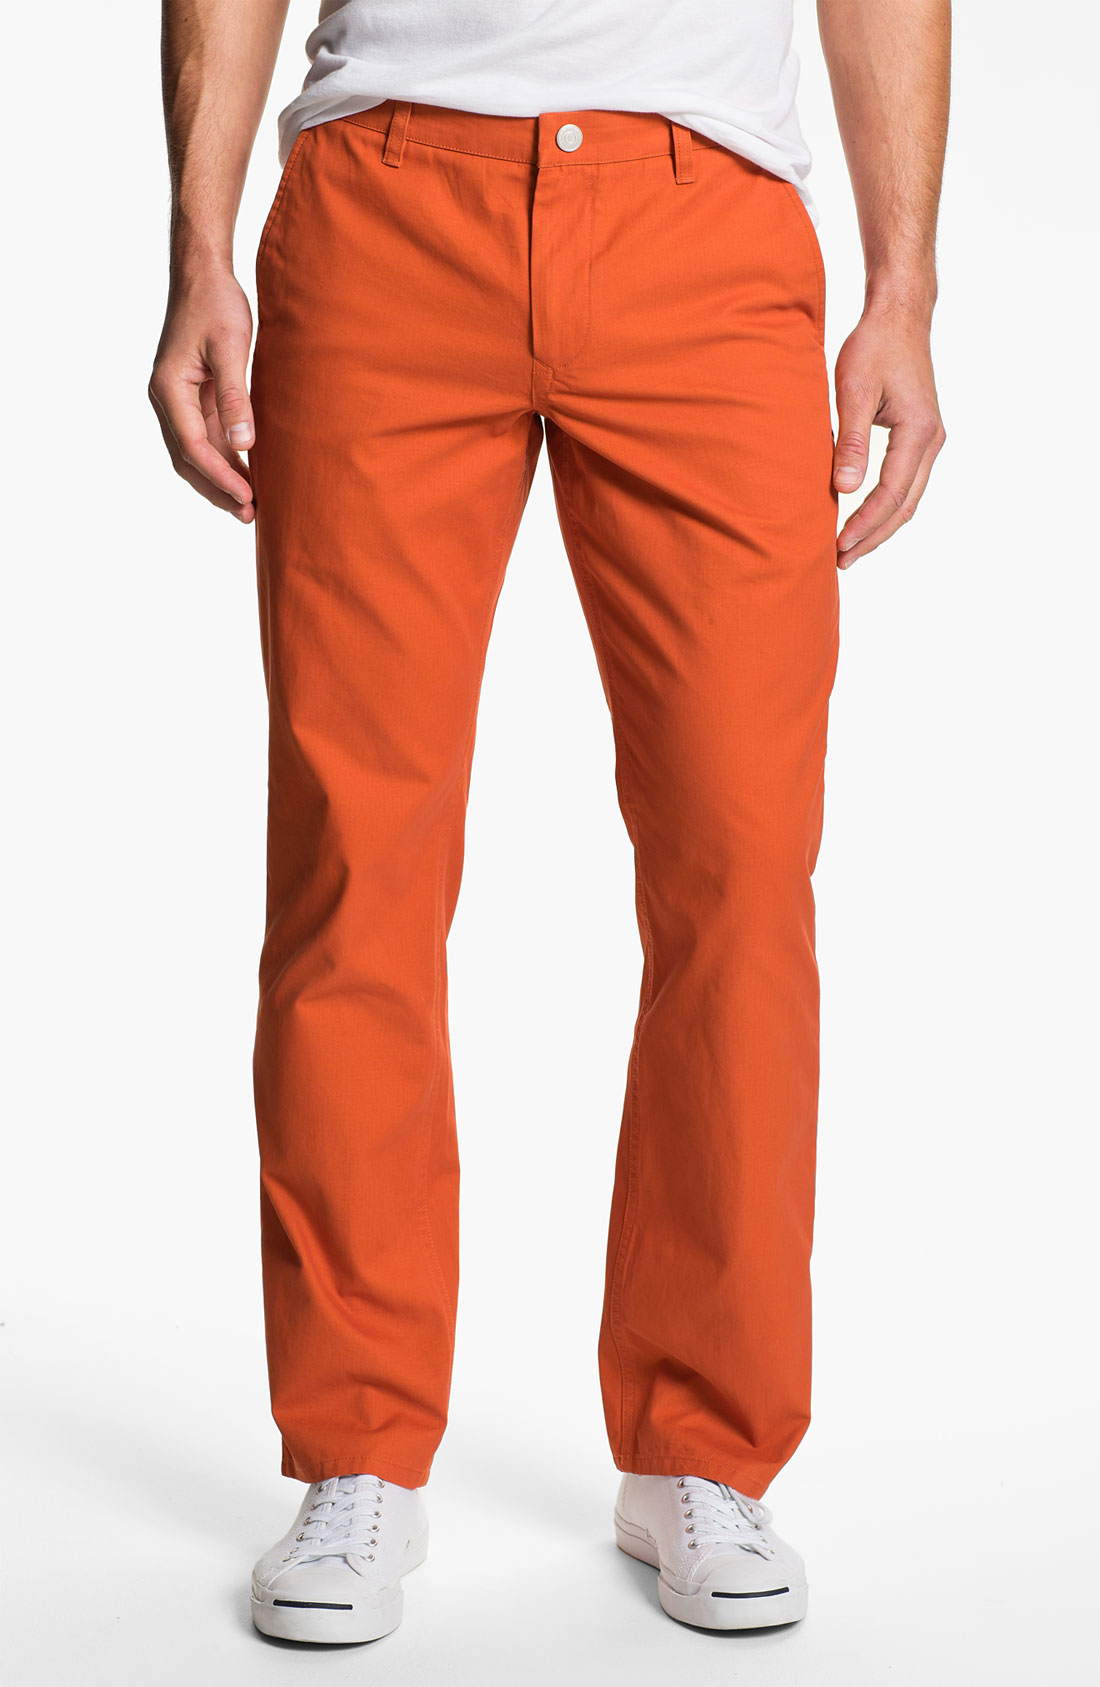 Explore discounts on Orange chinos. Compare Prices, & Save Money on brands such as J. Crew, Tommy Hilfiger and Hugo Boss at anthonyevans.tk